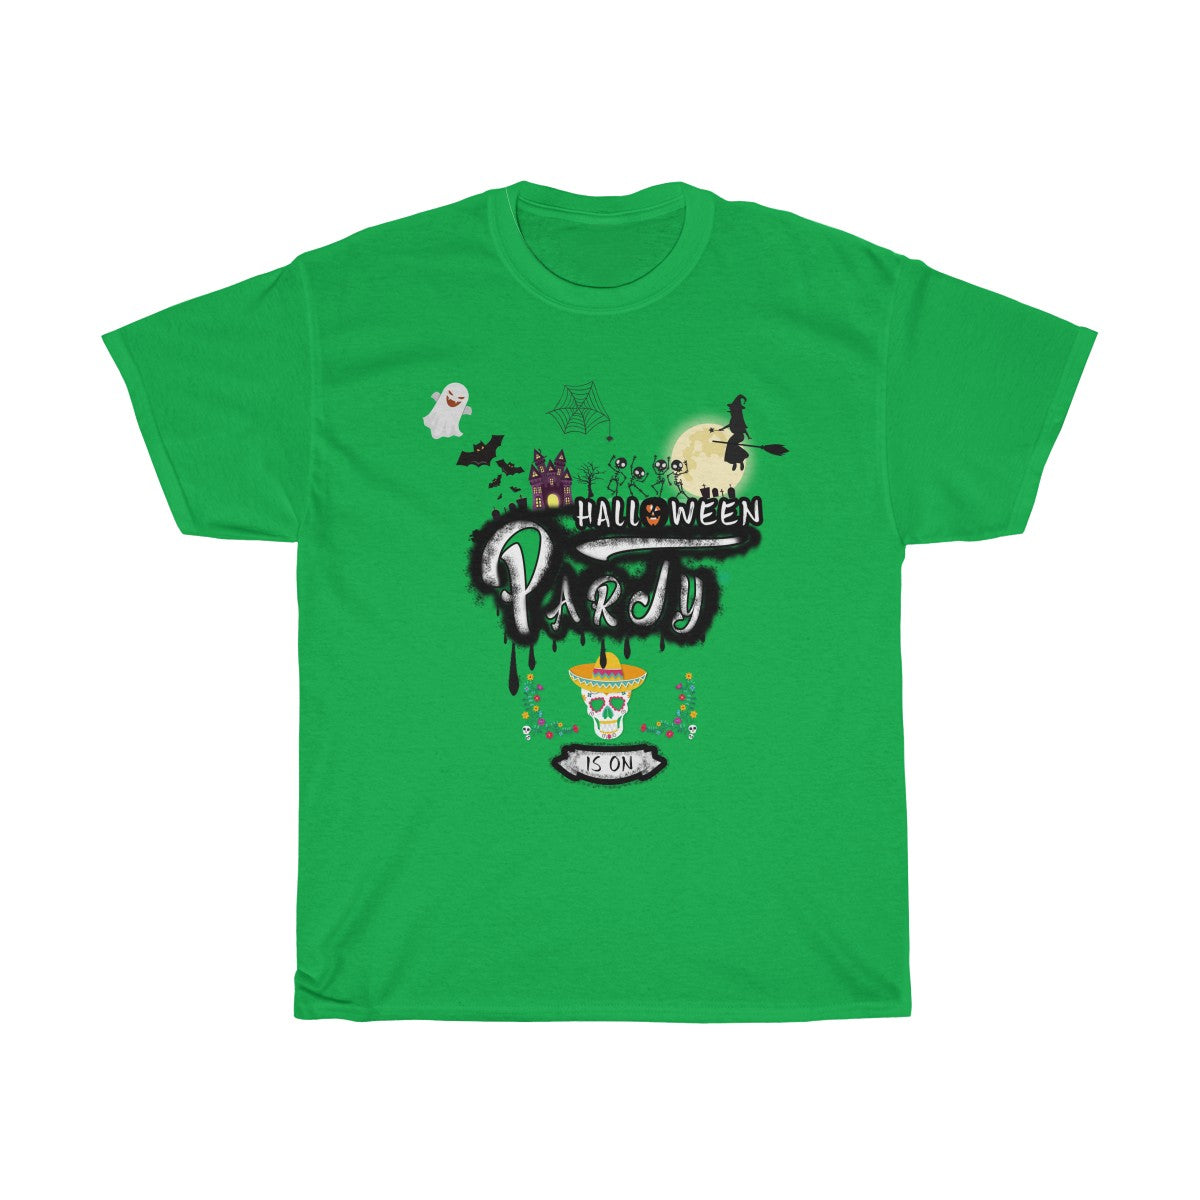 Happy Halloween Party T-shirt